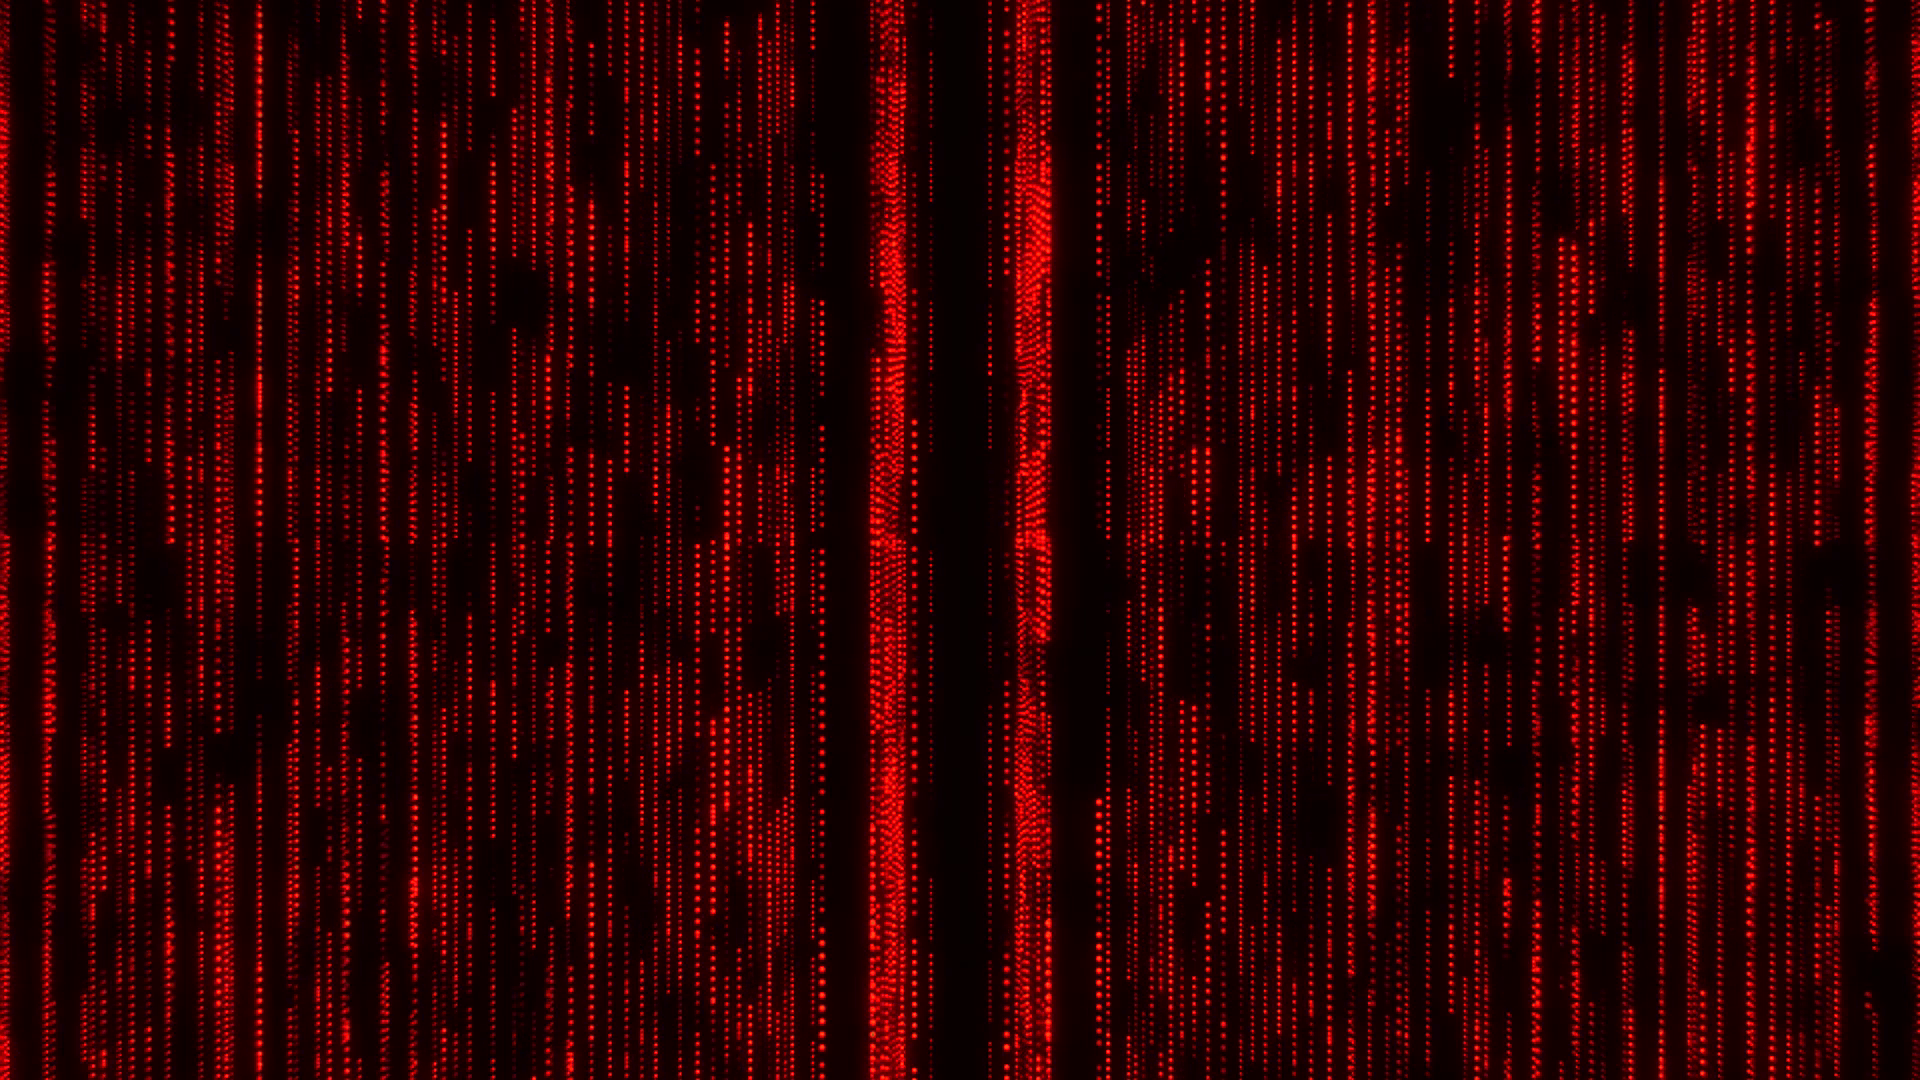 Animated Matrix Wallpaper Windows 10 919538 Png Images Pngio